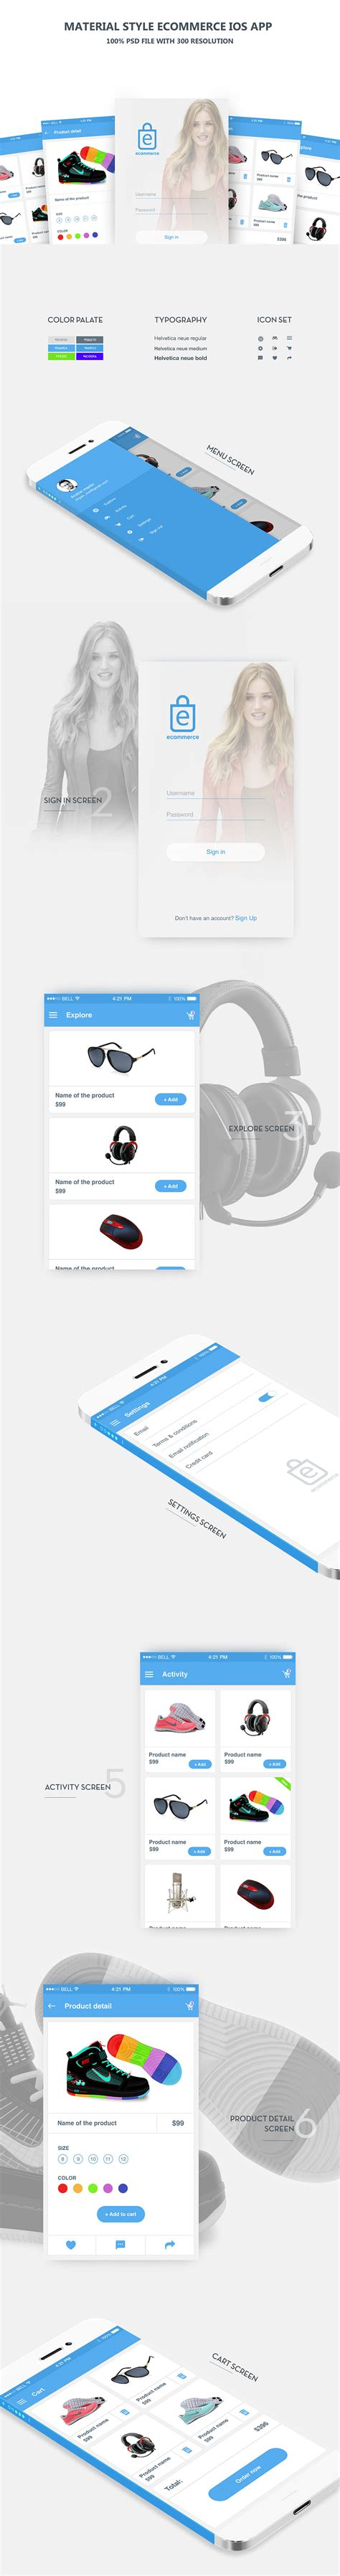 ecommerce app ui free psd download download psd clean material style ecommerce ios app free psd download